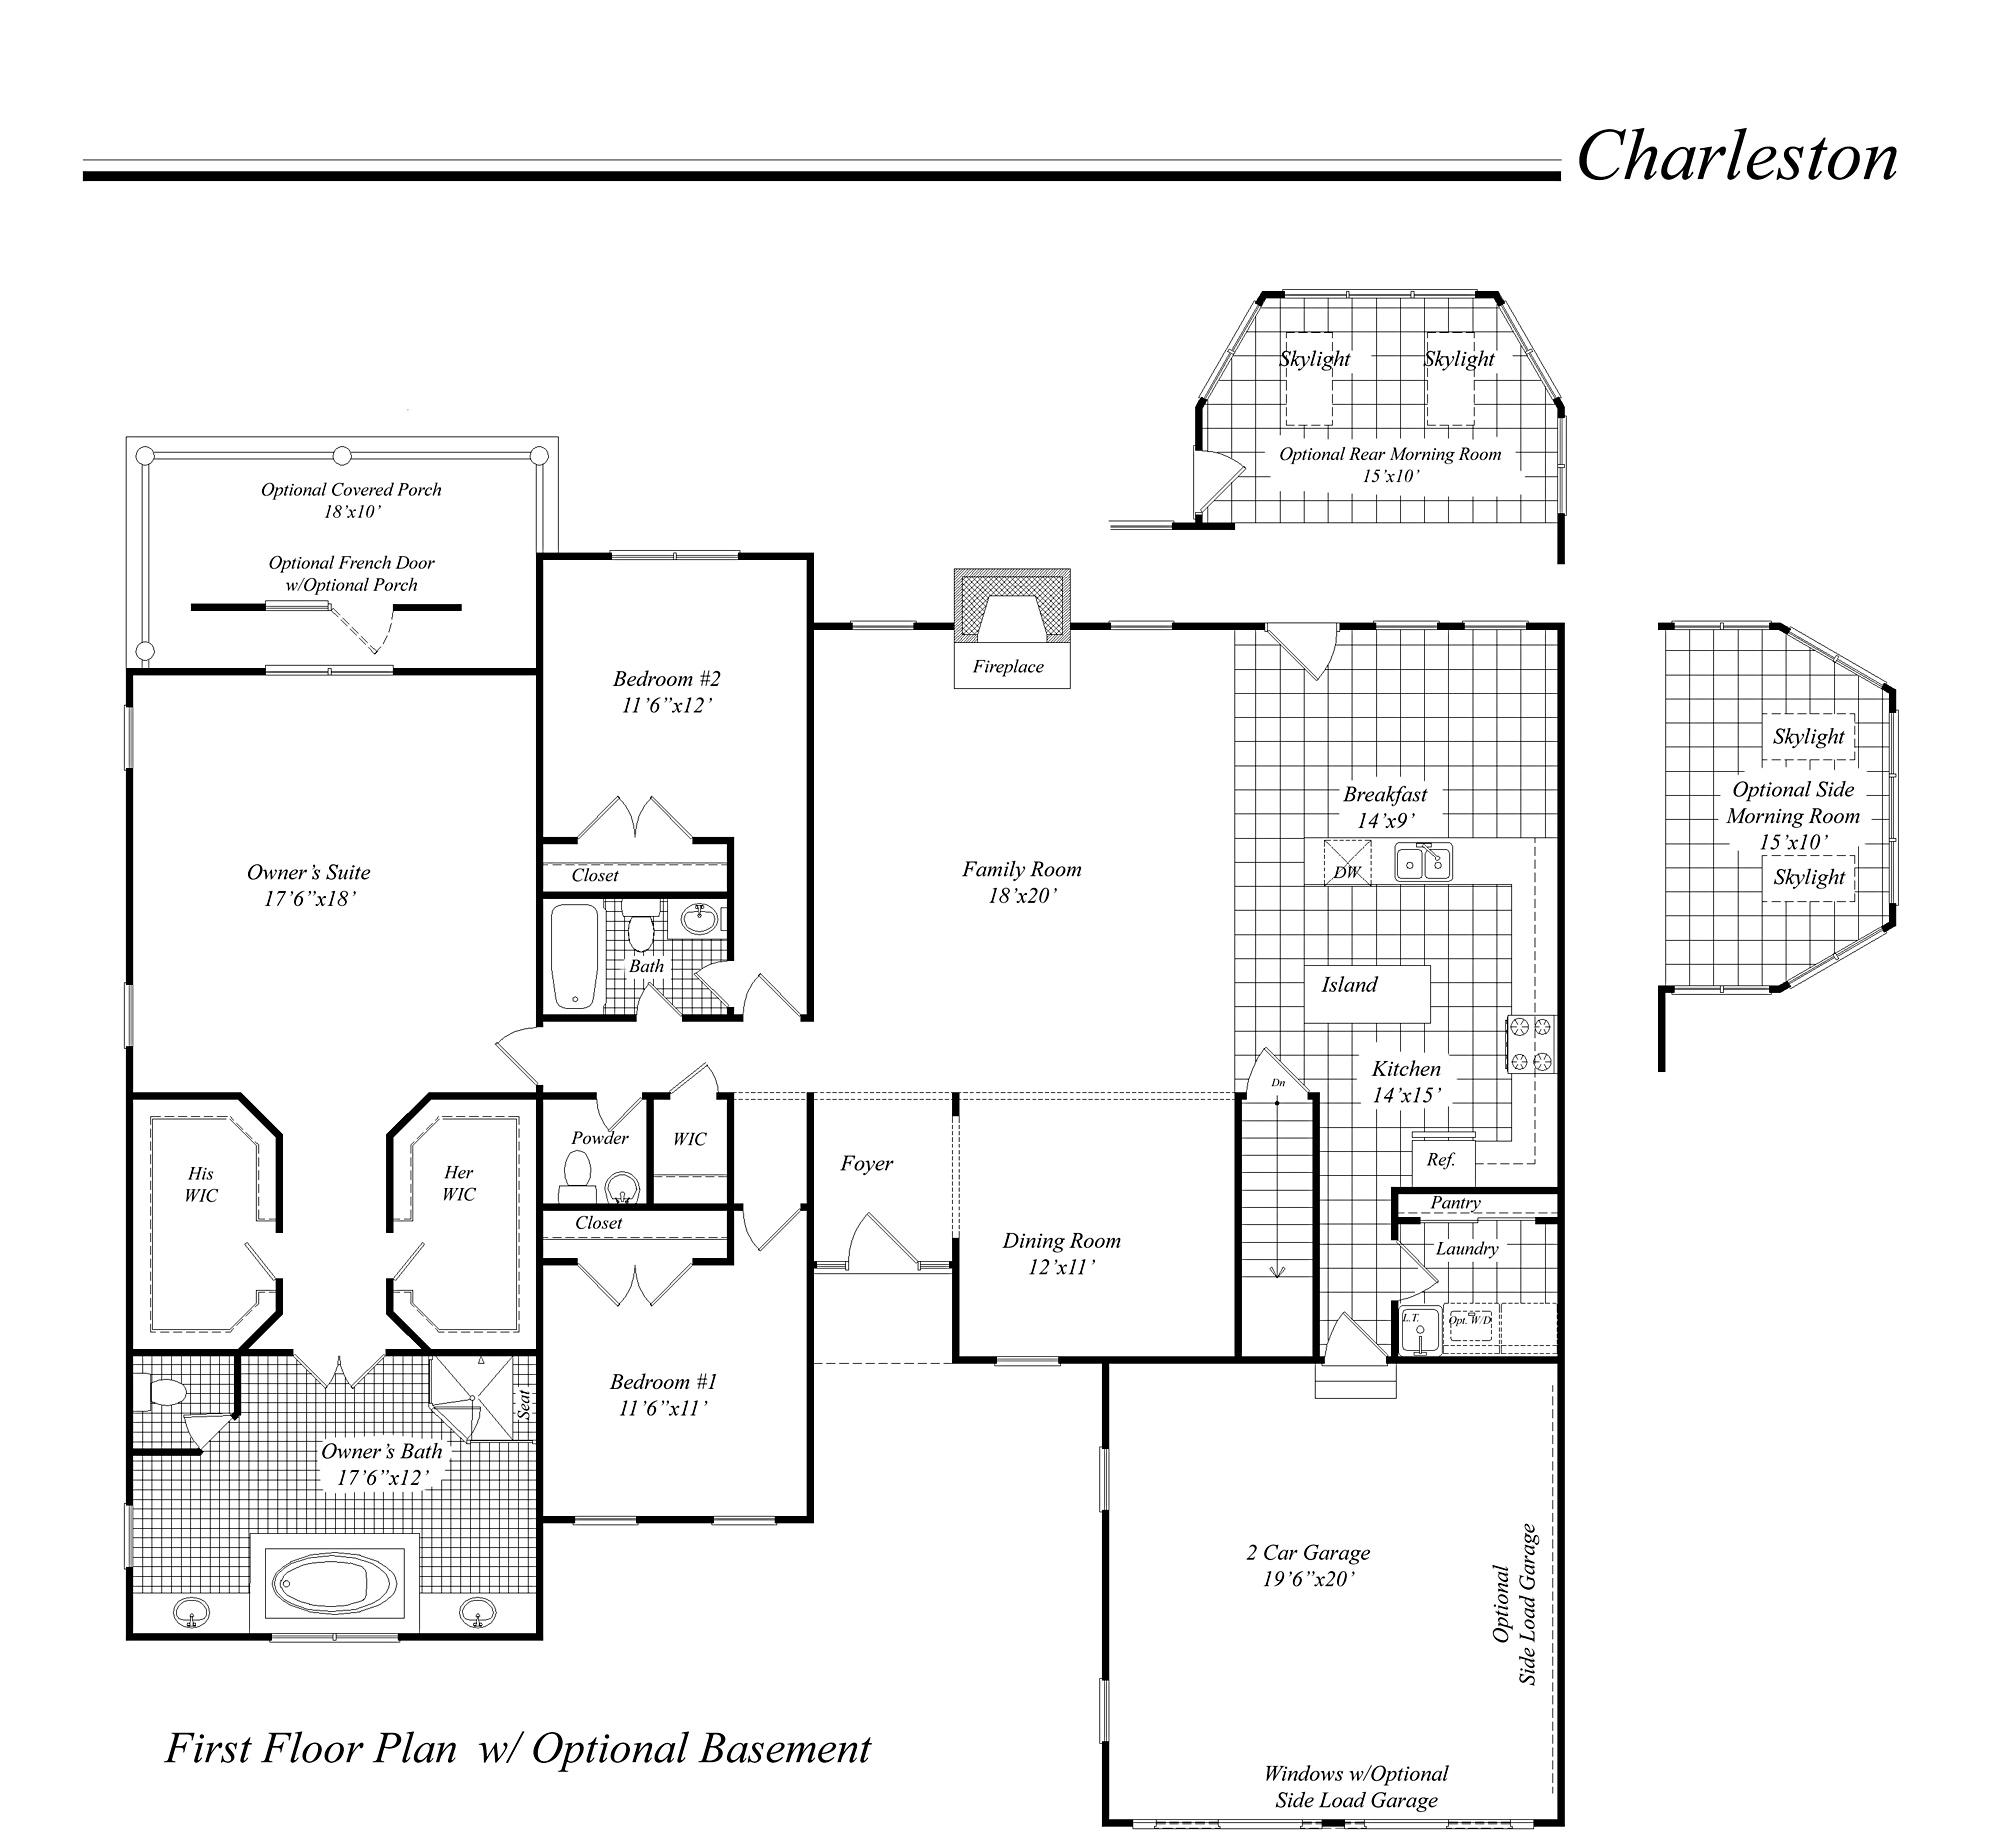 Free home floor plans floor plan drawing software free floorplans for homes House designs and floor plans software